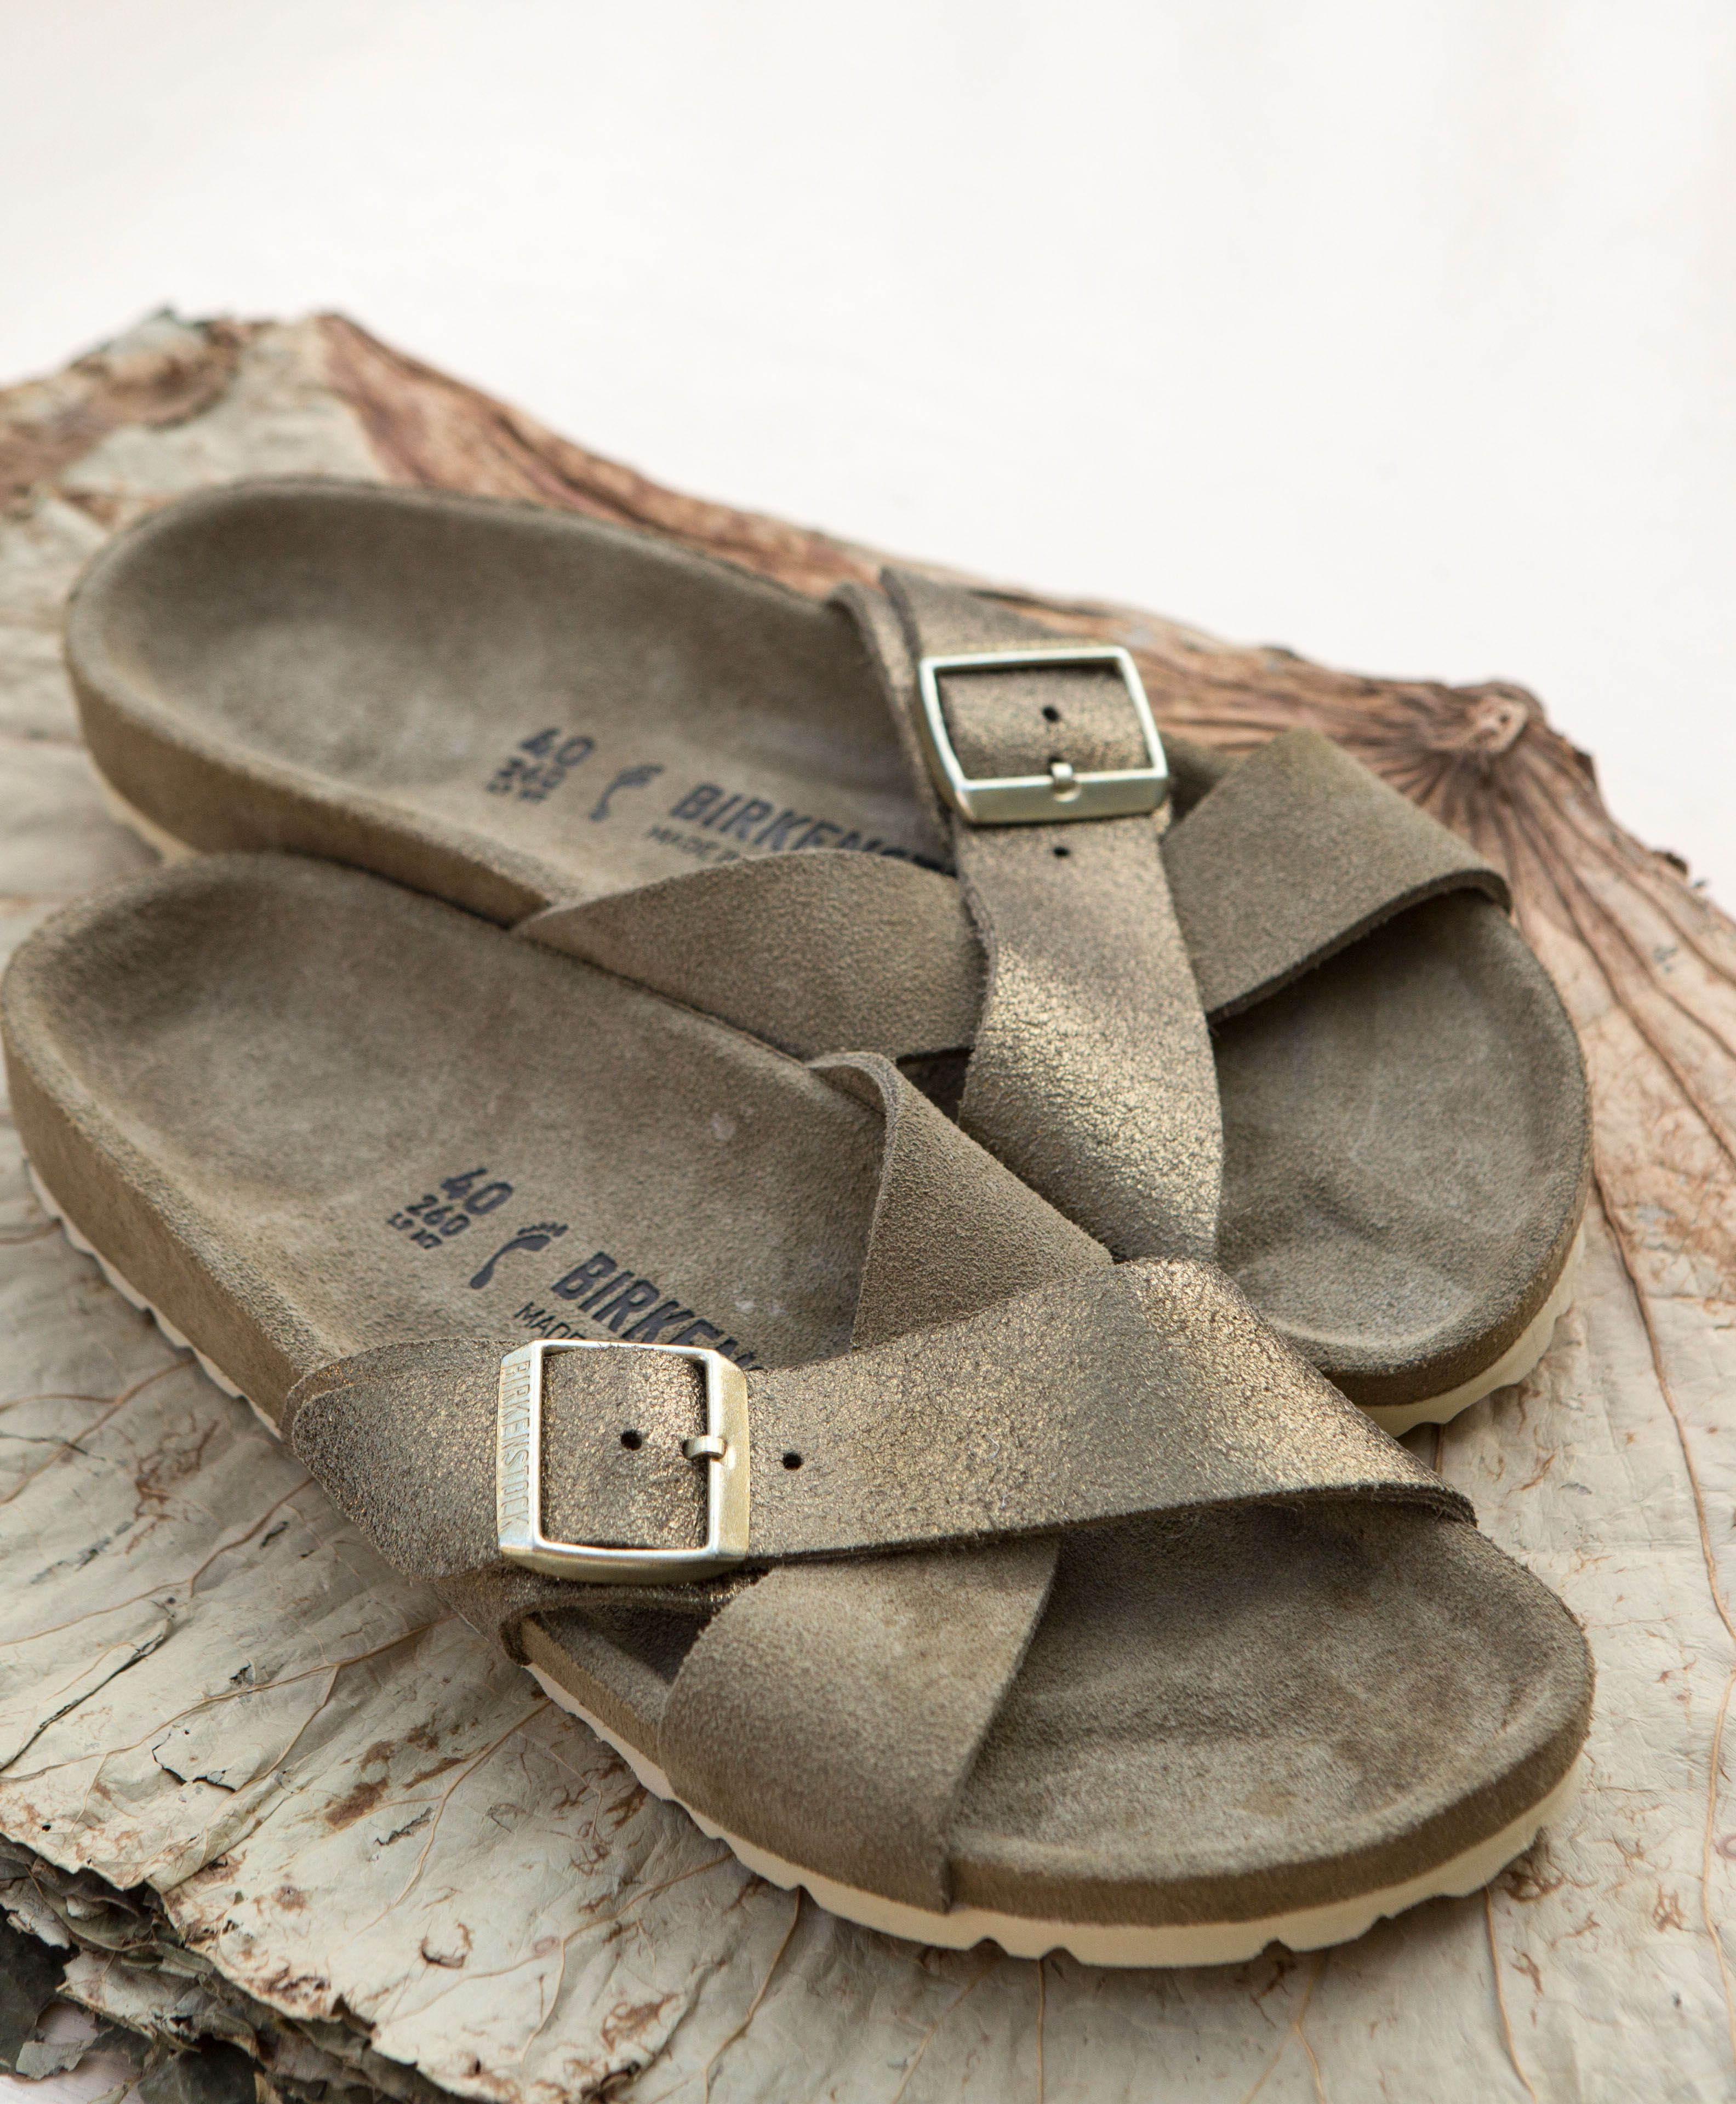 a4ee7afefc3 The Siena Exquisite - an elegant new sandal from BIRKENSTOCK. This  luxurious style features simple crisscrossing straps and an Exquisite  footbed - our ...